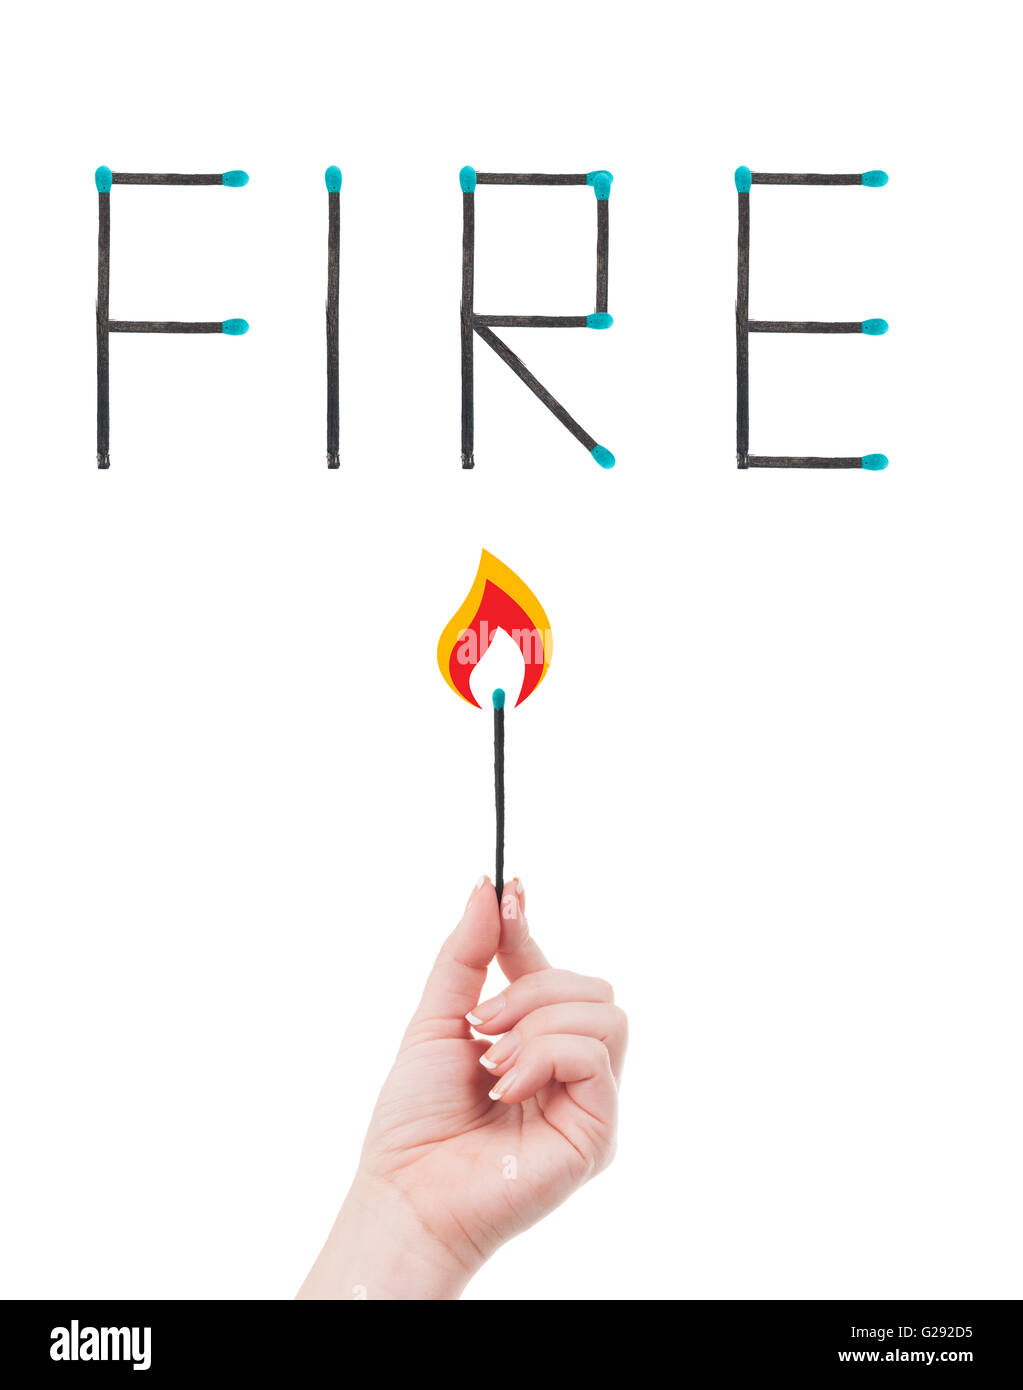 hand holding a burning match and word fire written with matches. Fire hazard concept isolated on white background. - Stock Image